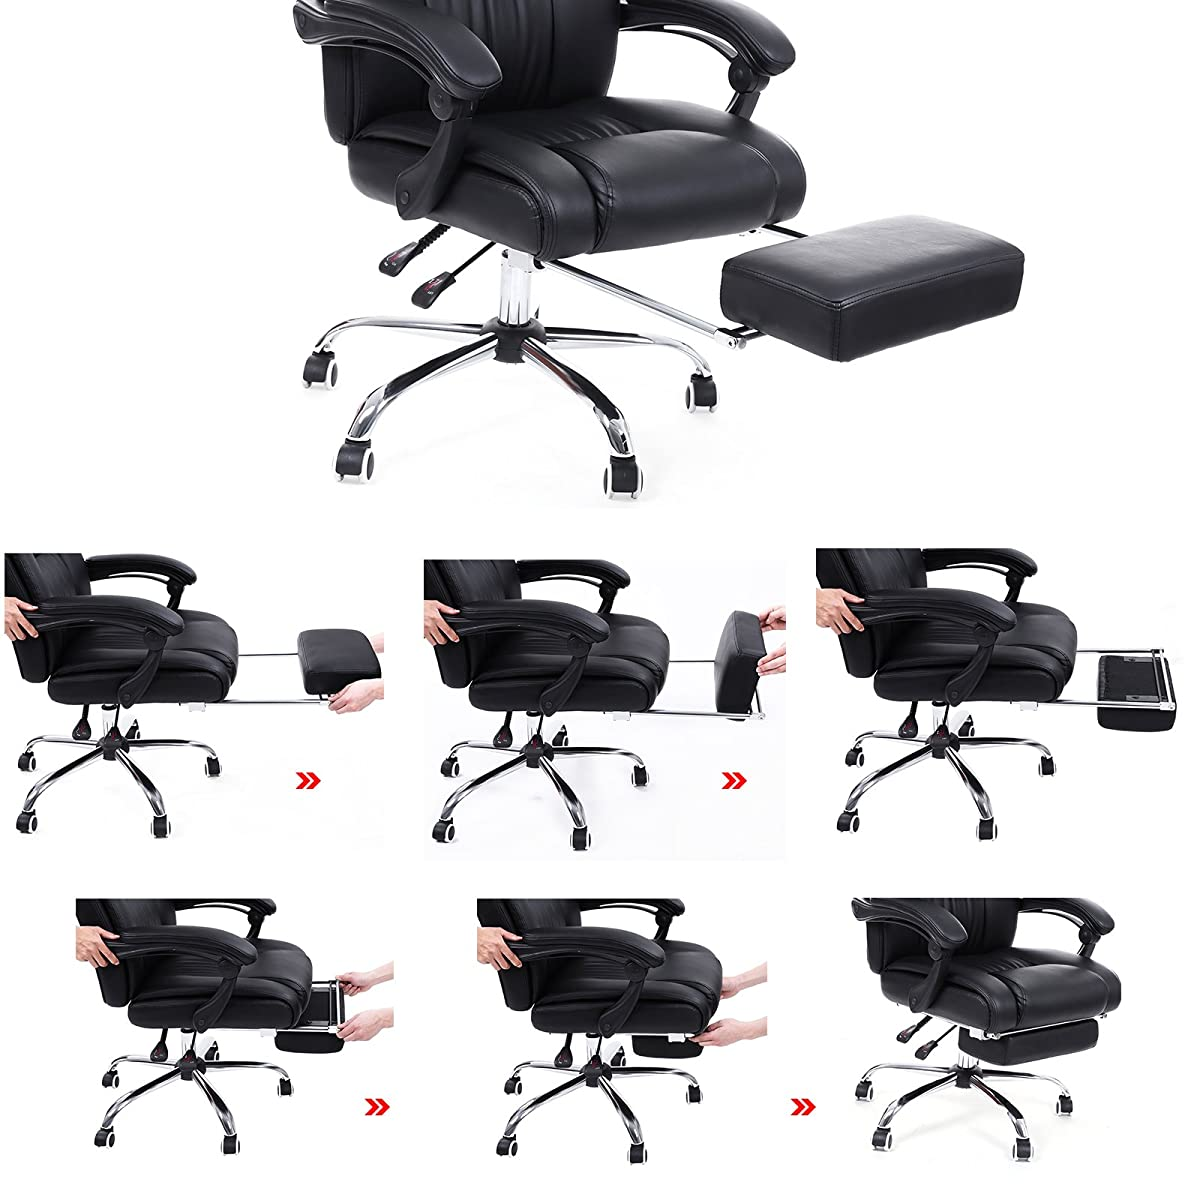 SONGMICS Extra Large Office Chair High Back Executive Swivel Chair with Large Seat and Pull-out Footrest PU Leather Black UOBG71B